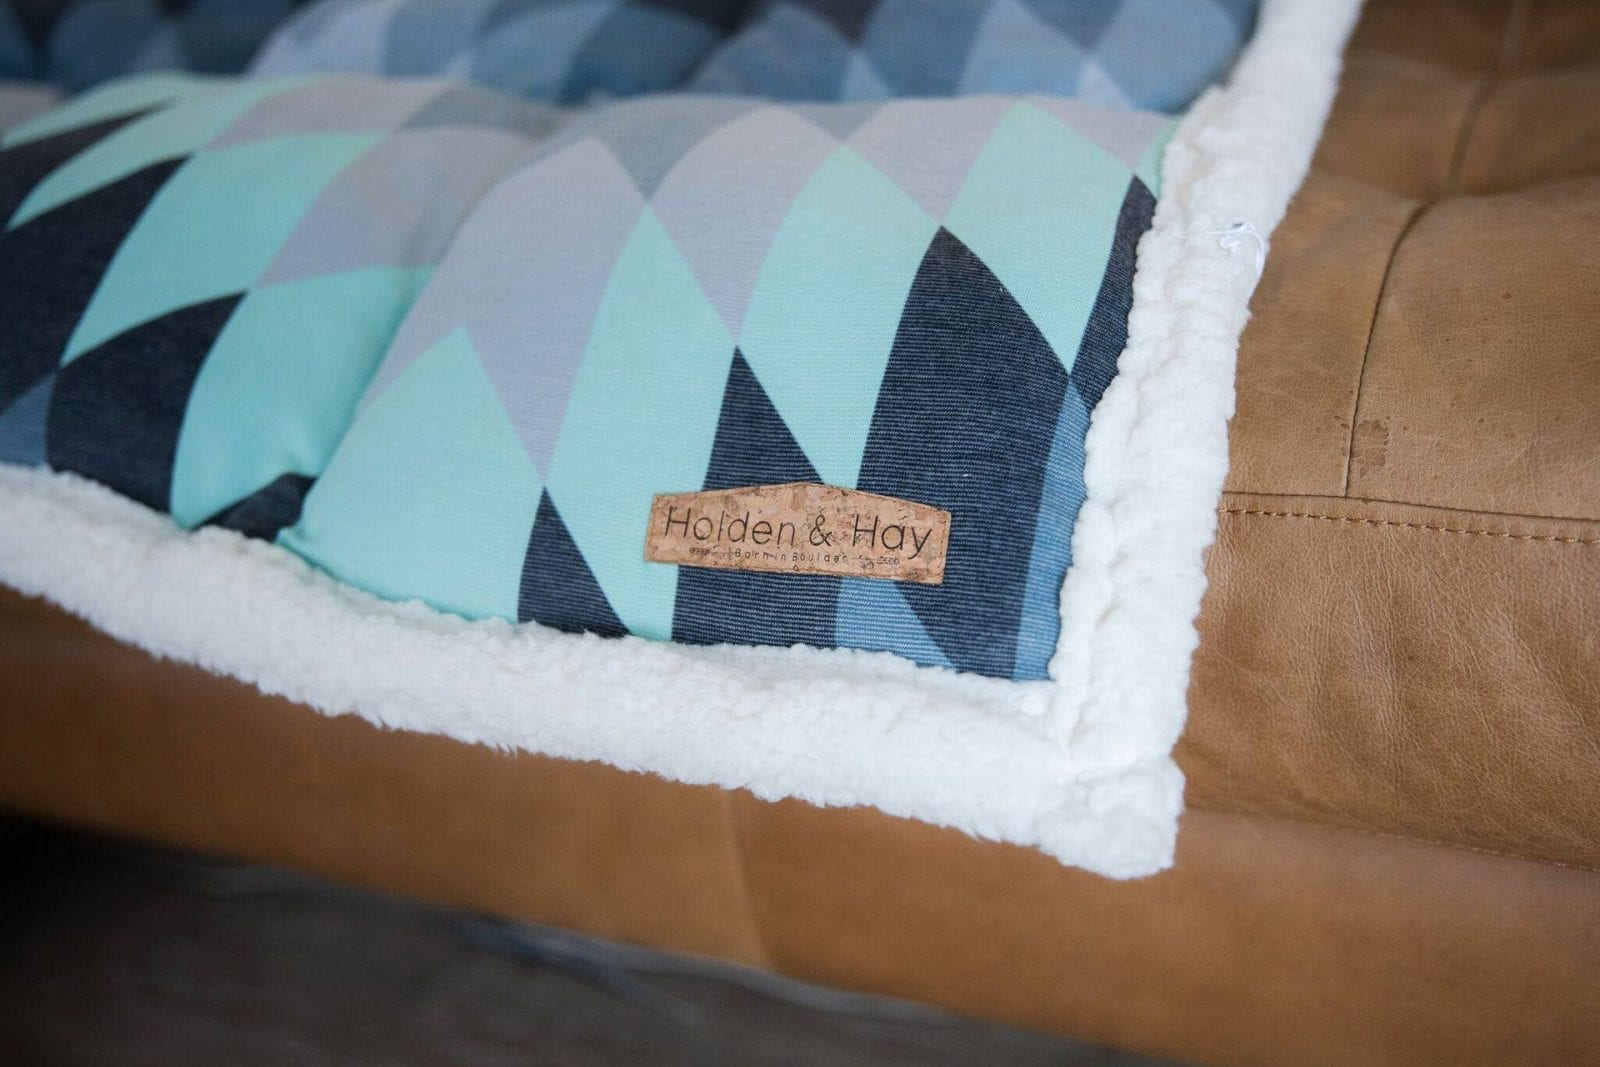 Image of a duvet made by Holden & Hay in Colorado